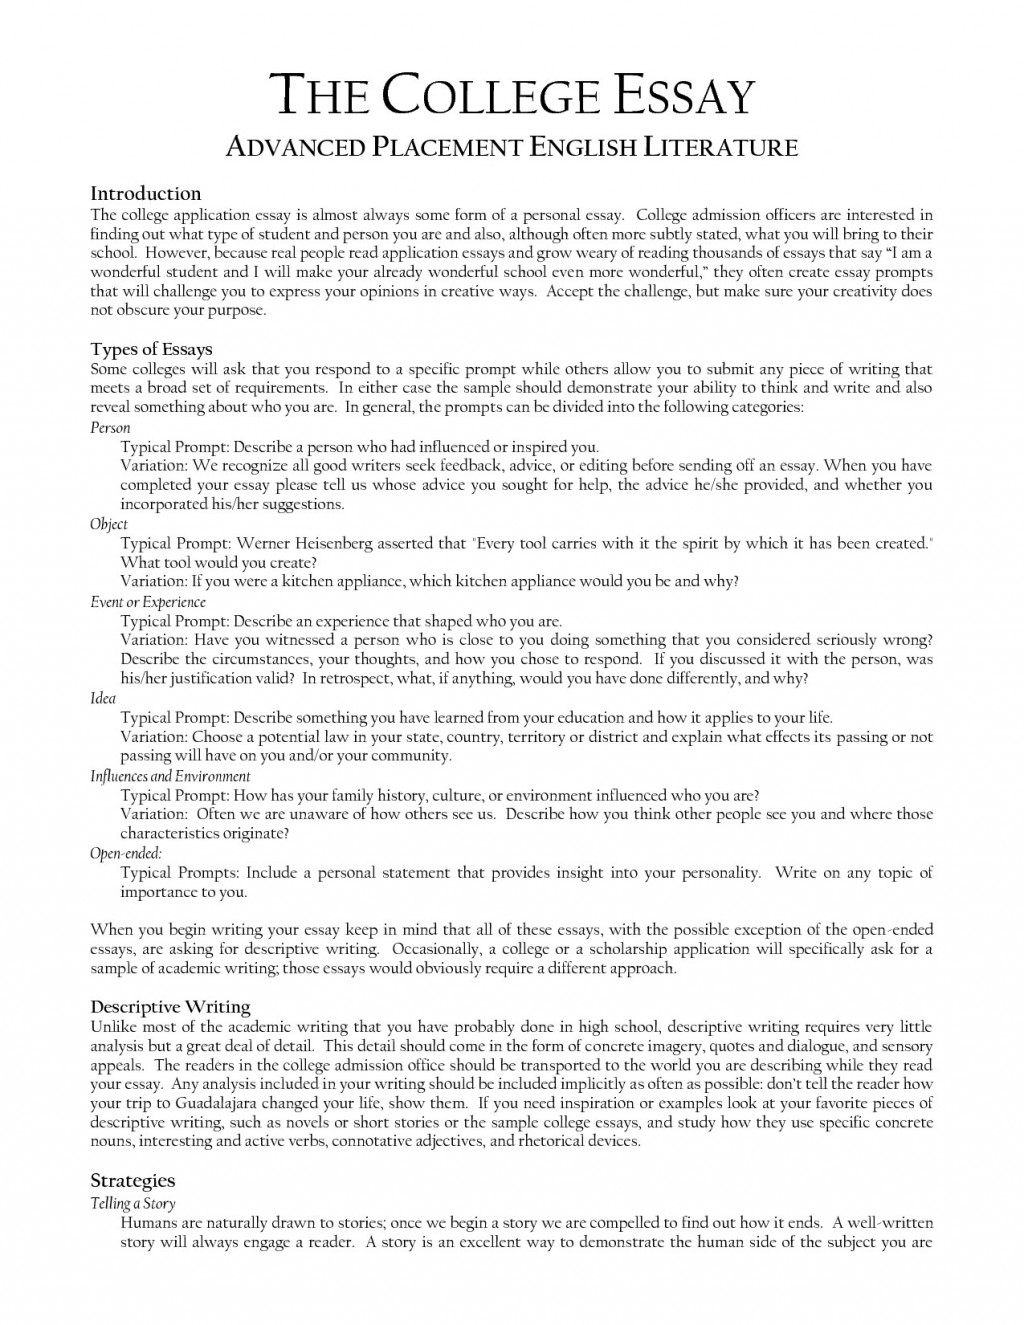 006 Essayple Ideas Collection College Applicationples Format Good Mba Essays Great Perfect Of Amazing Entrance Stupendous How To A Essay Should I My Application Write Mla Common App Large